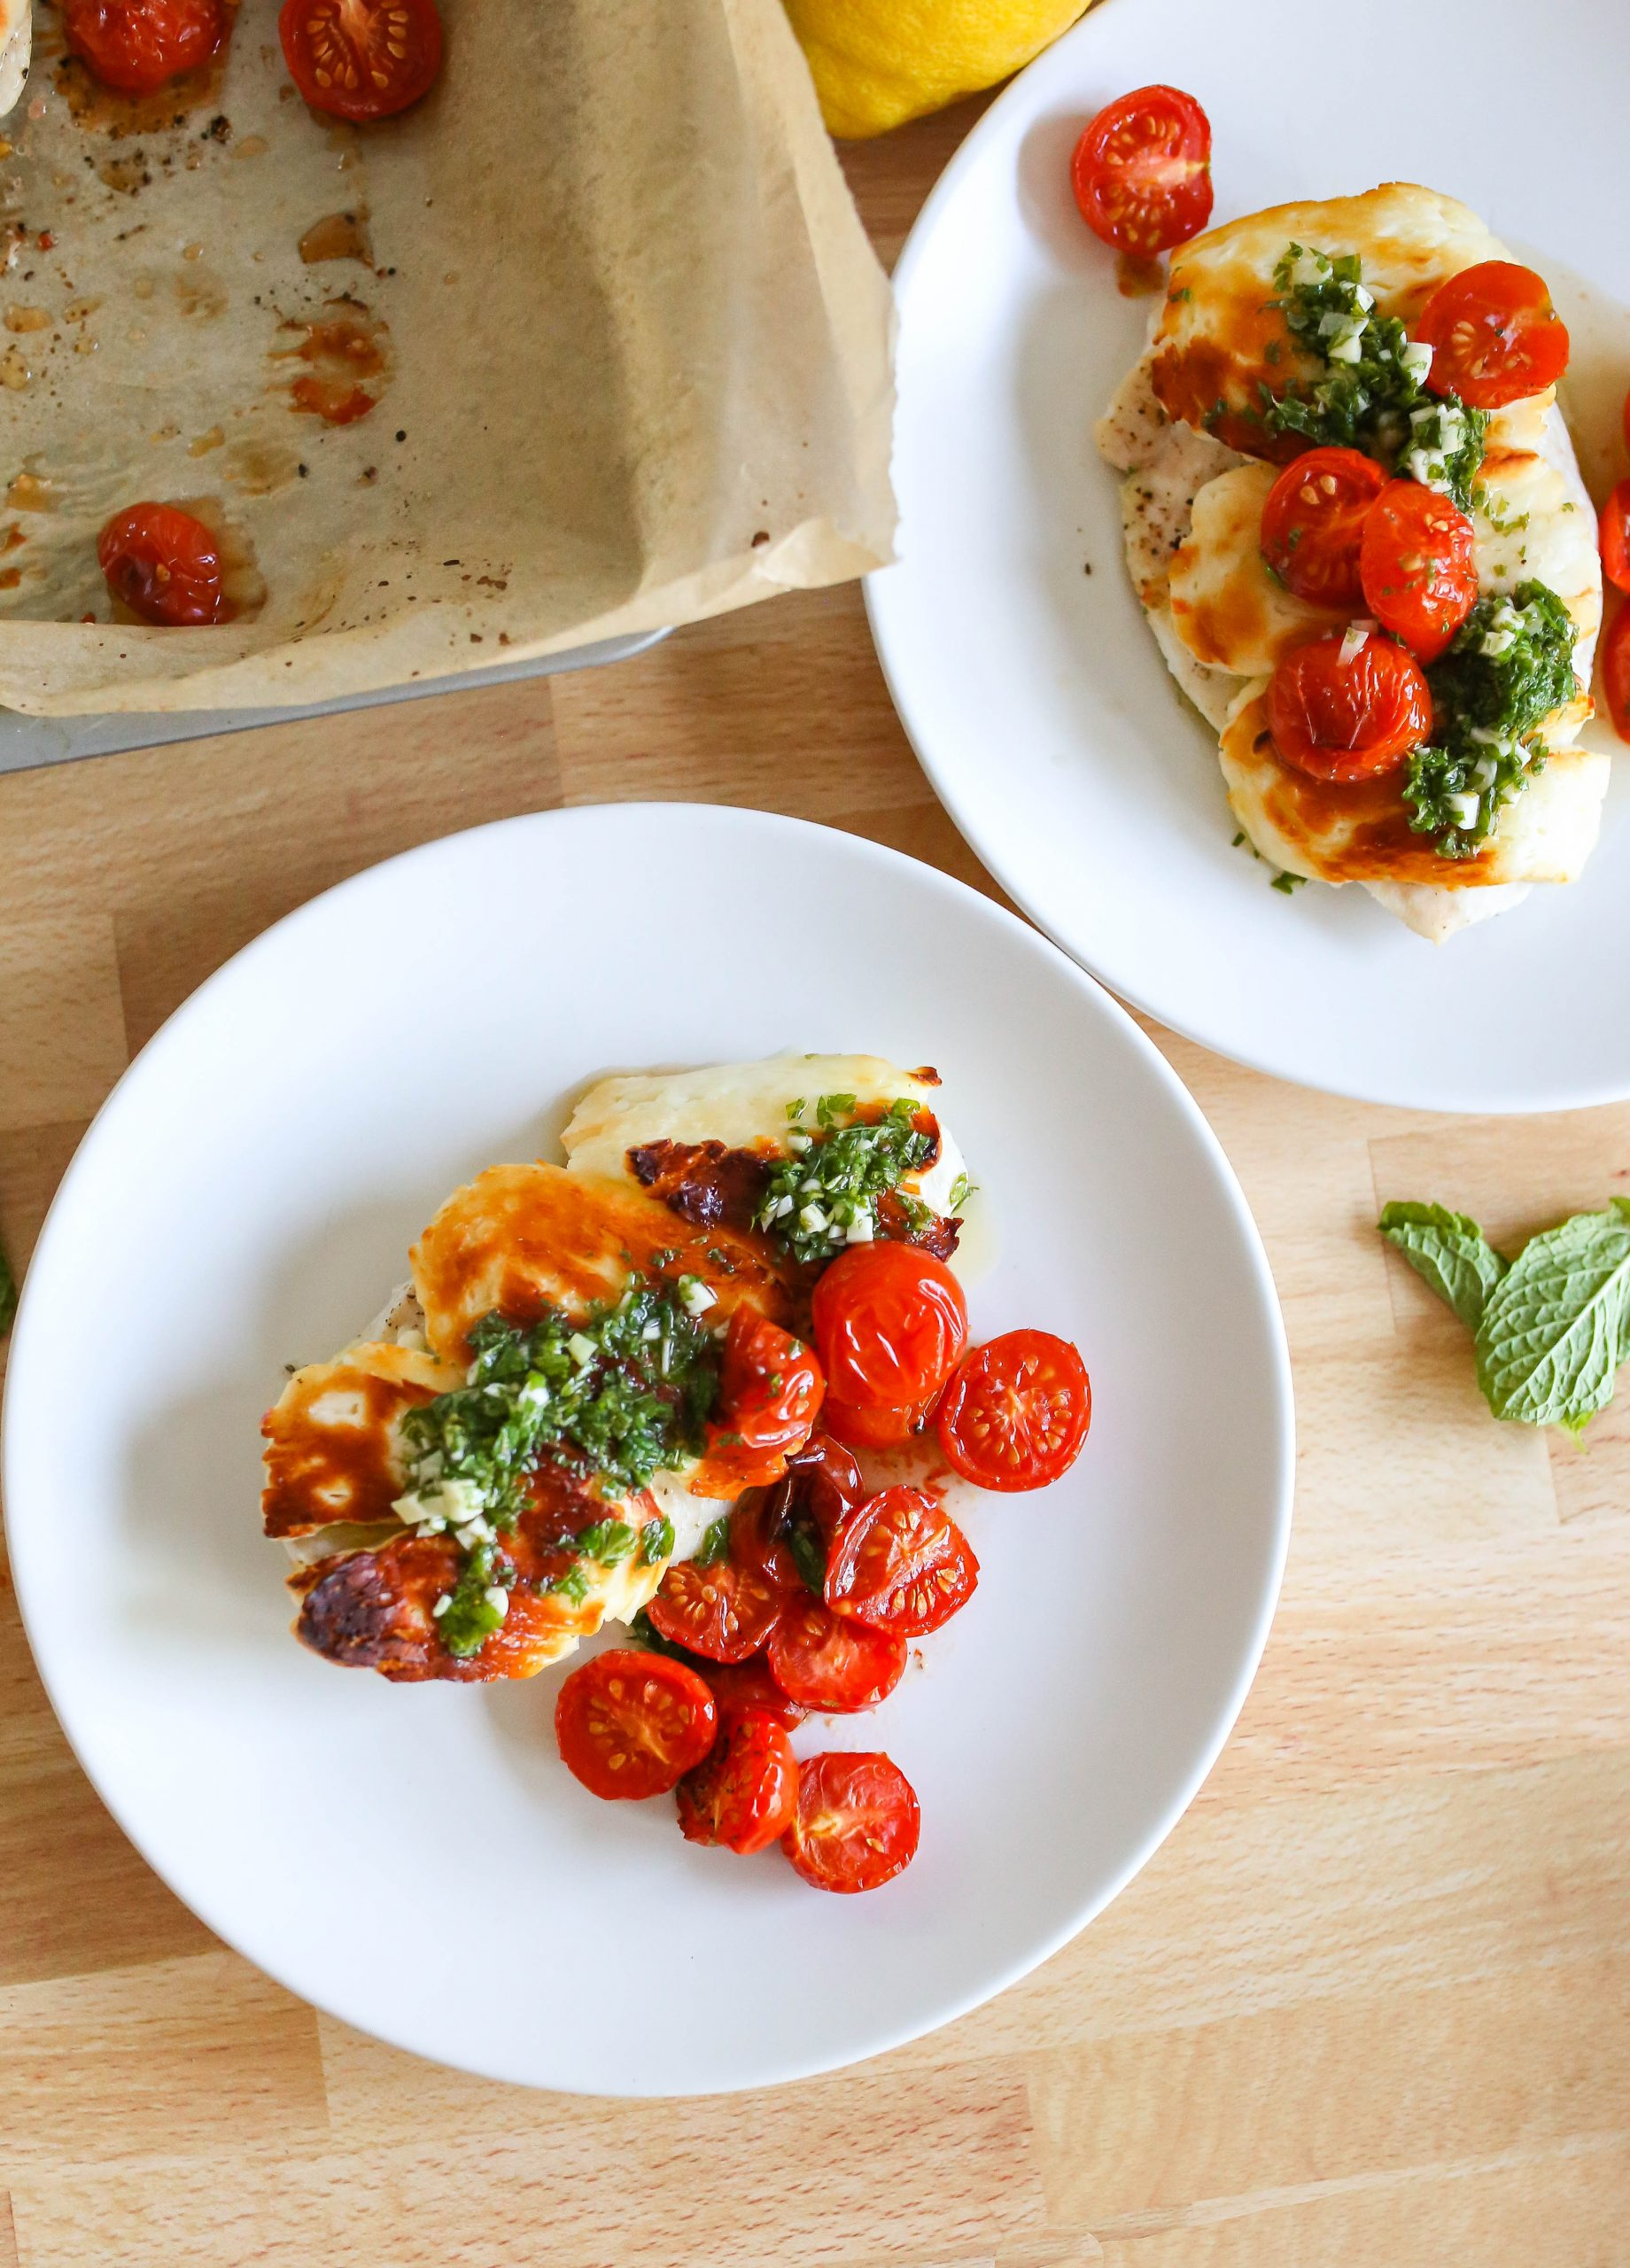 Halloumi Chicken Recipe with Tomatoes and Mint Sauce